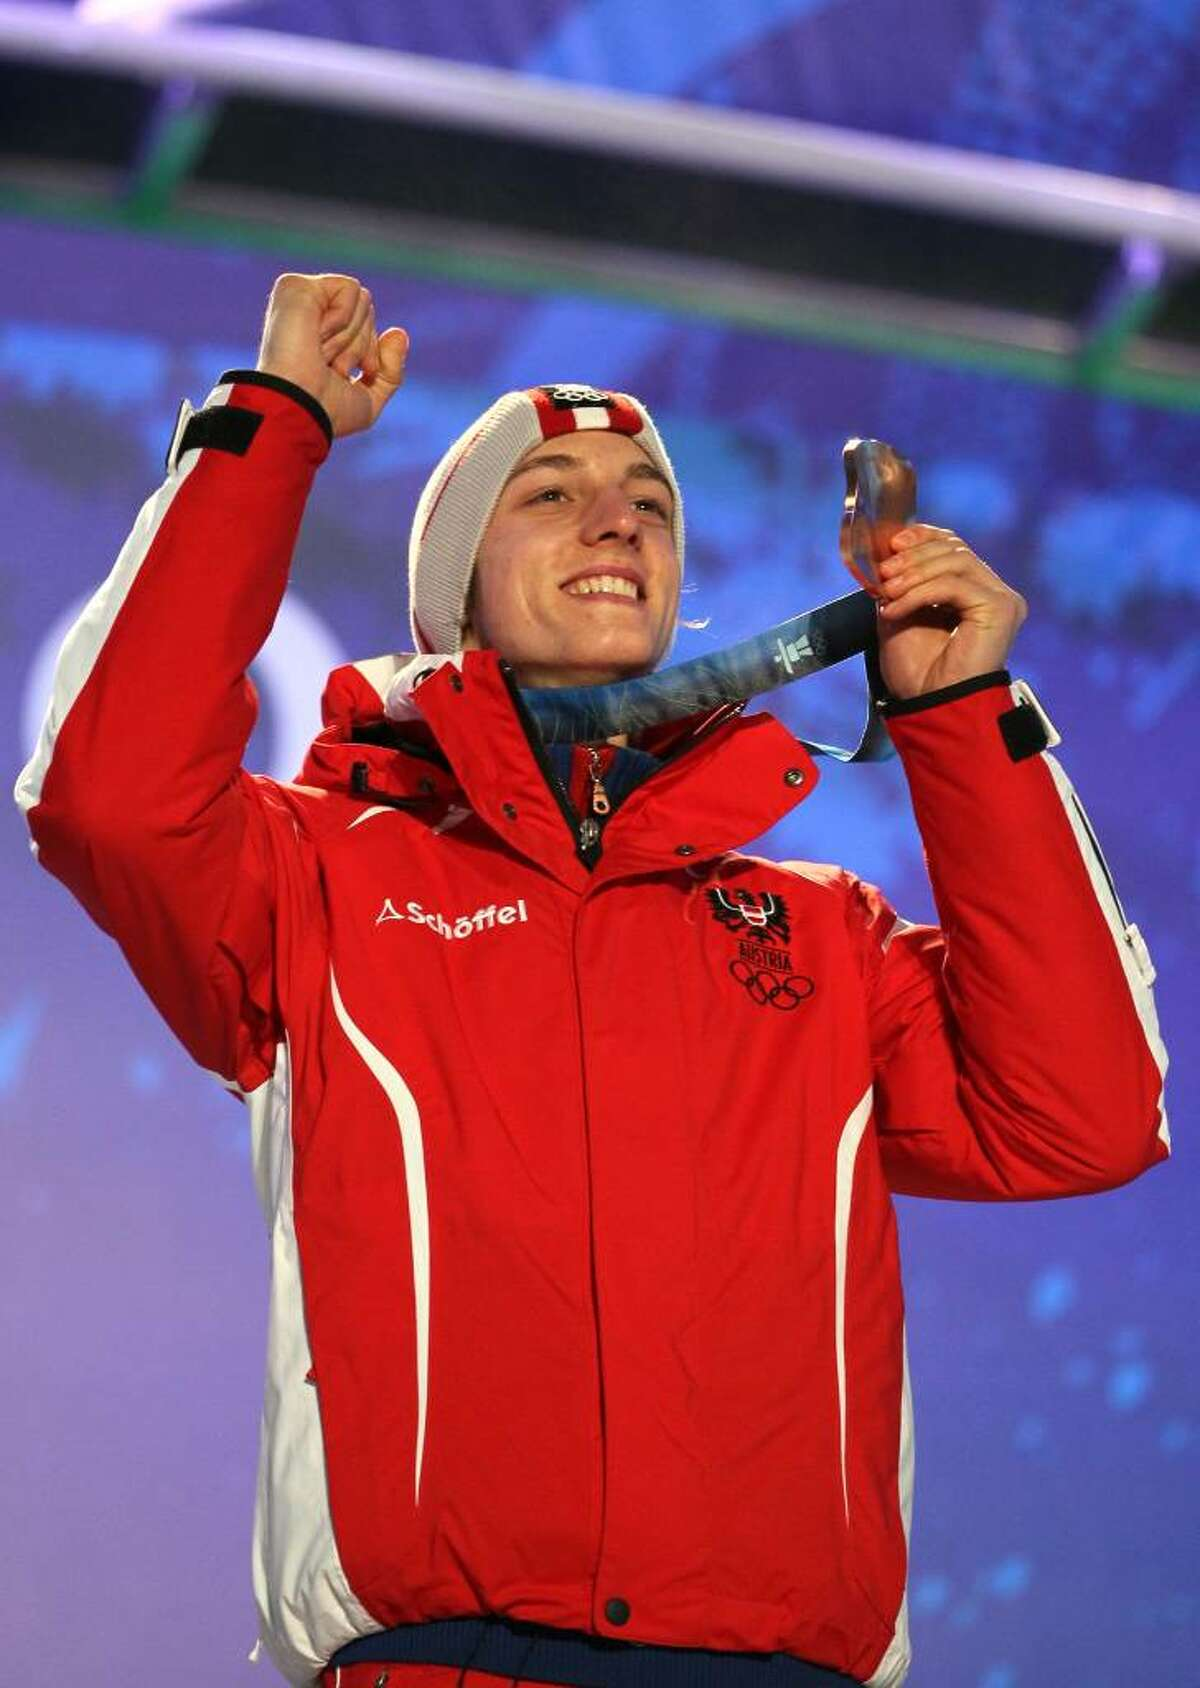 WHISTLER, BC - FEBRUARY 13: Bronze medalist Gregor Schlierenzauer of Austria celebrates with his medal during the Medal Ceremony for the Ski Jumping Normal Hill Individual on day 2 of the Vancouver 2010 Winter Olympics at Whistler Medals Plaza on February 13, 2010 in Whistler, Canada. (Photo by Al Bello/Getty Images) *** Local Caption *** Gregor Schlierenzauer